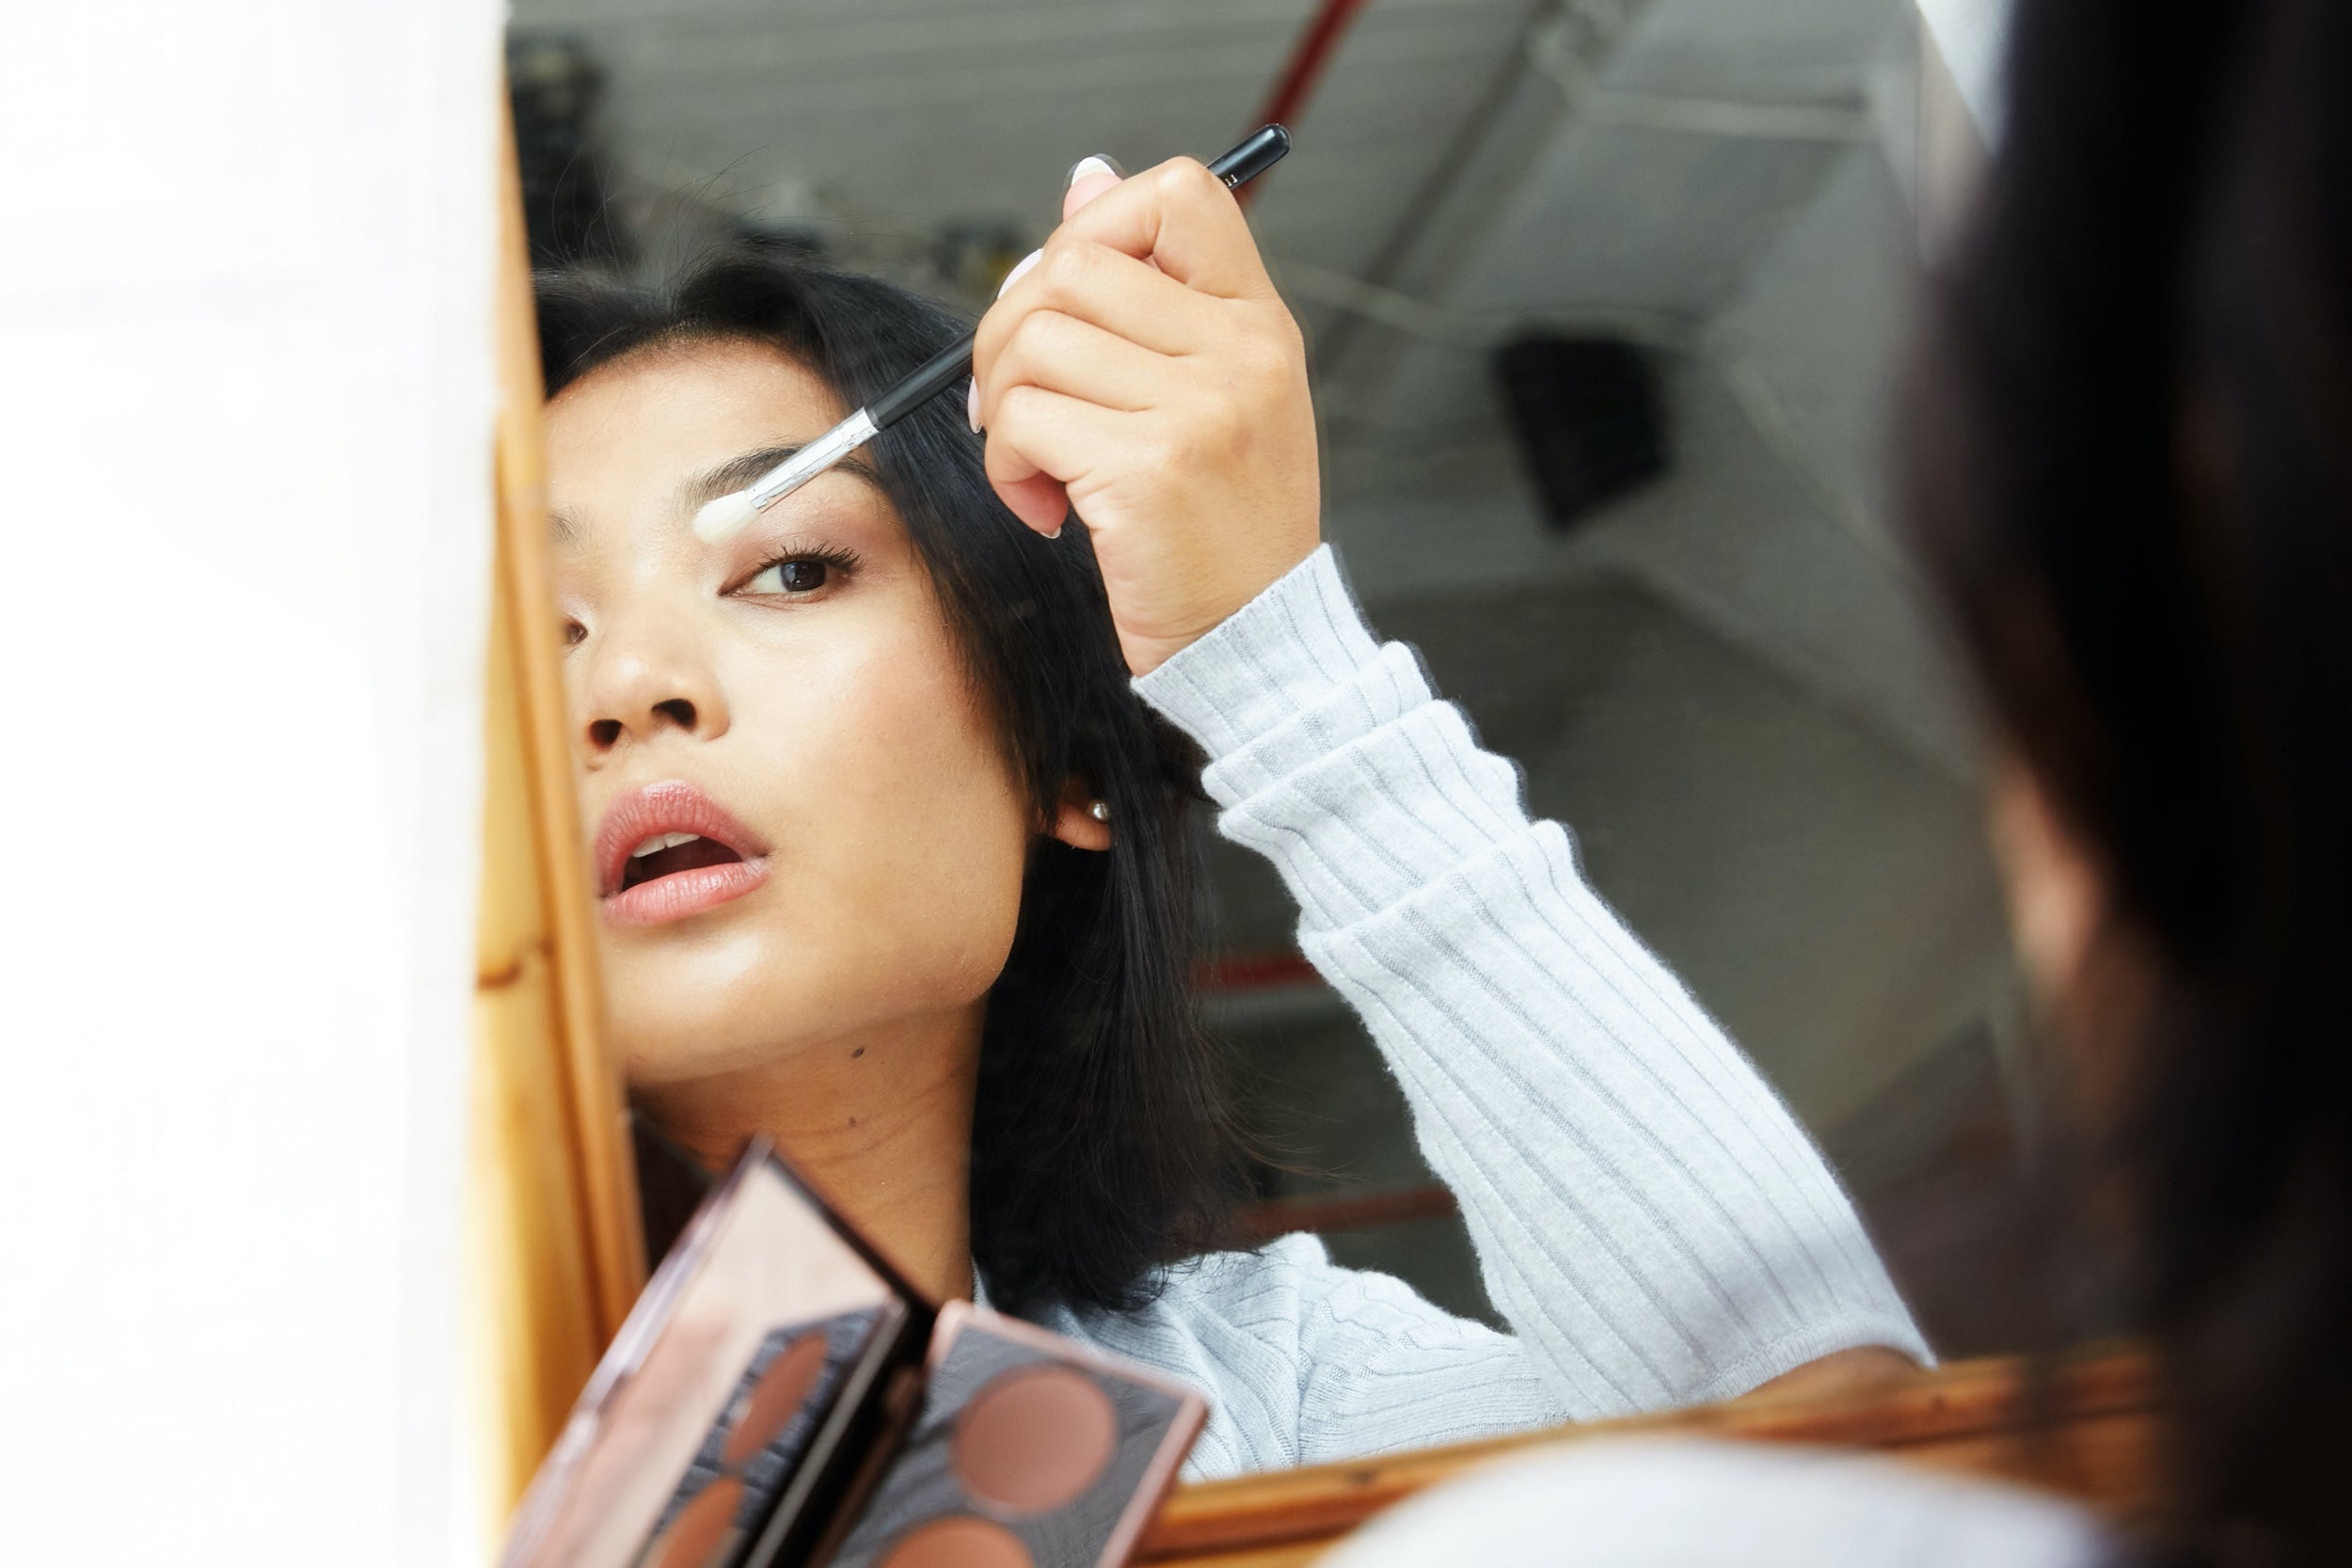 Image of a woman applying eye makeup in a mirror